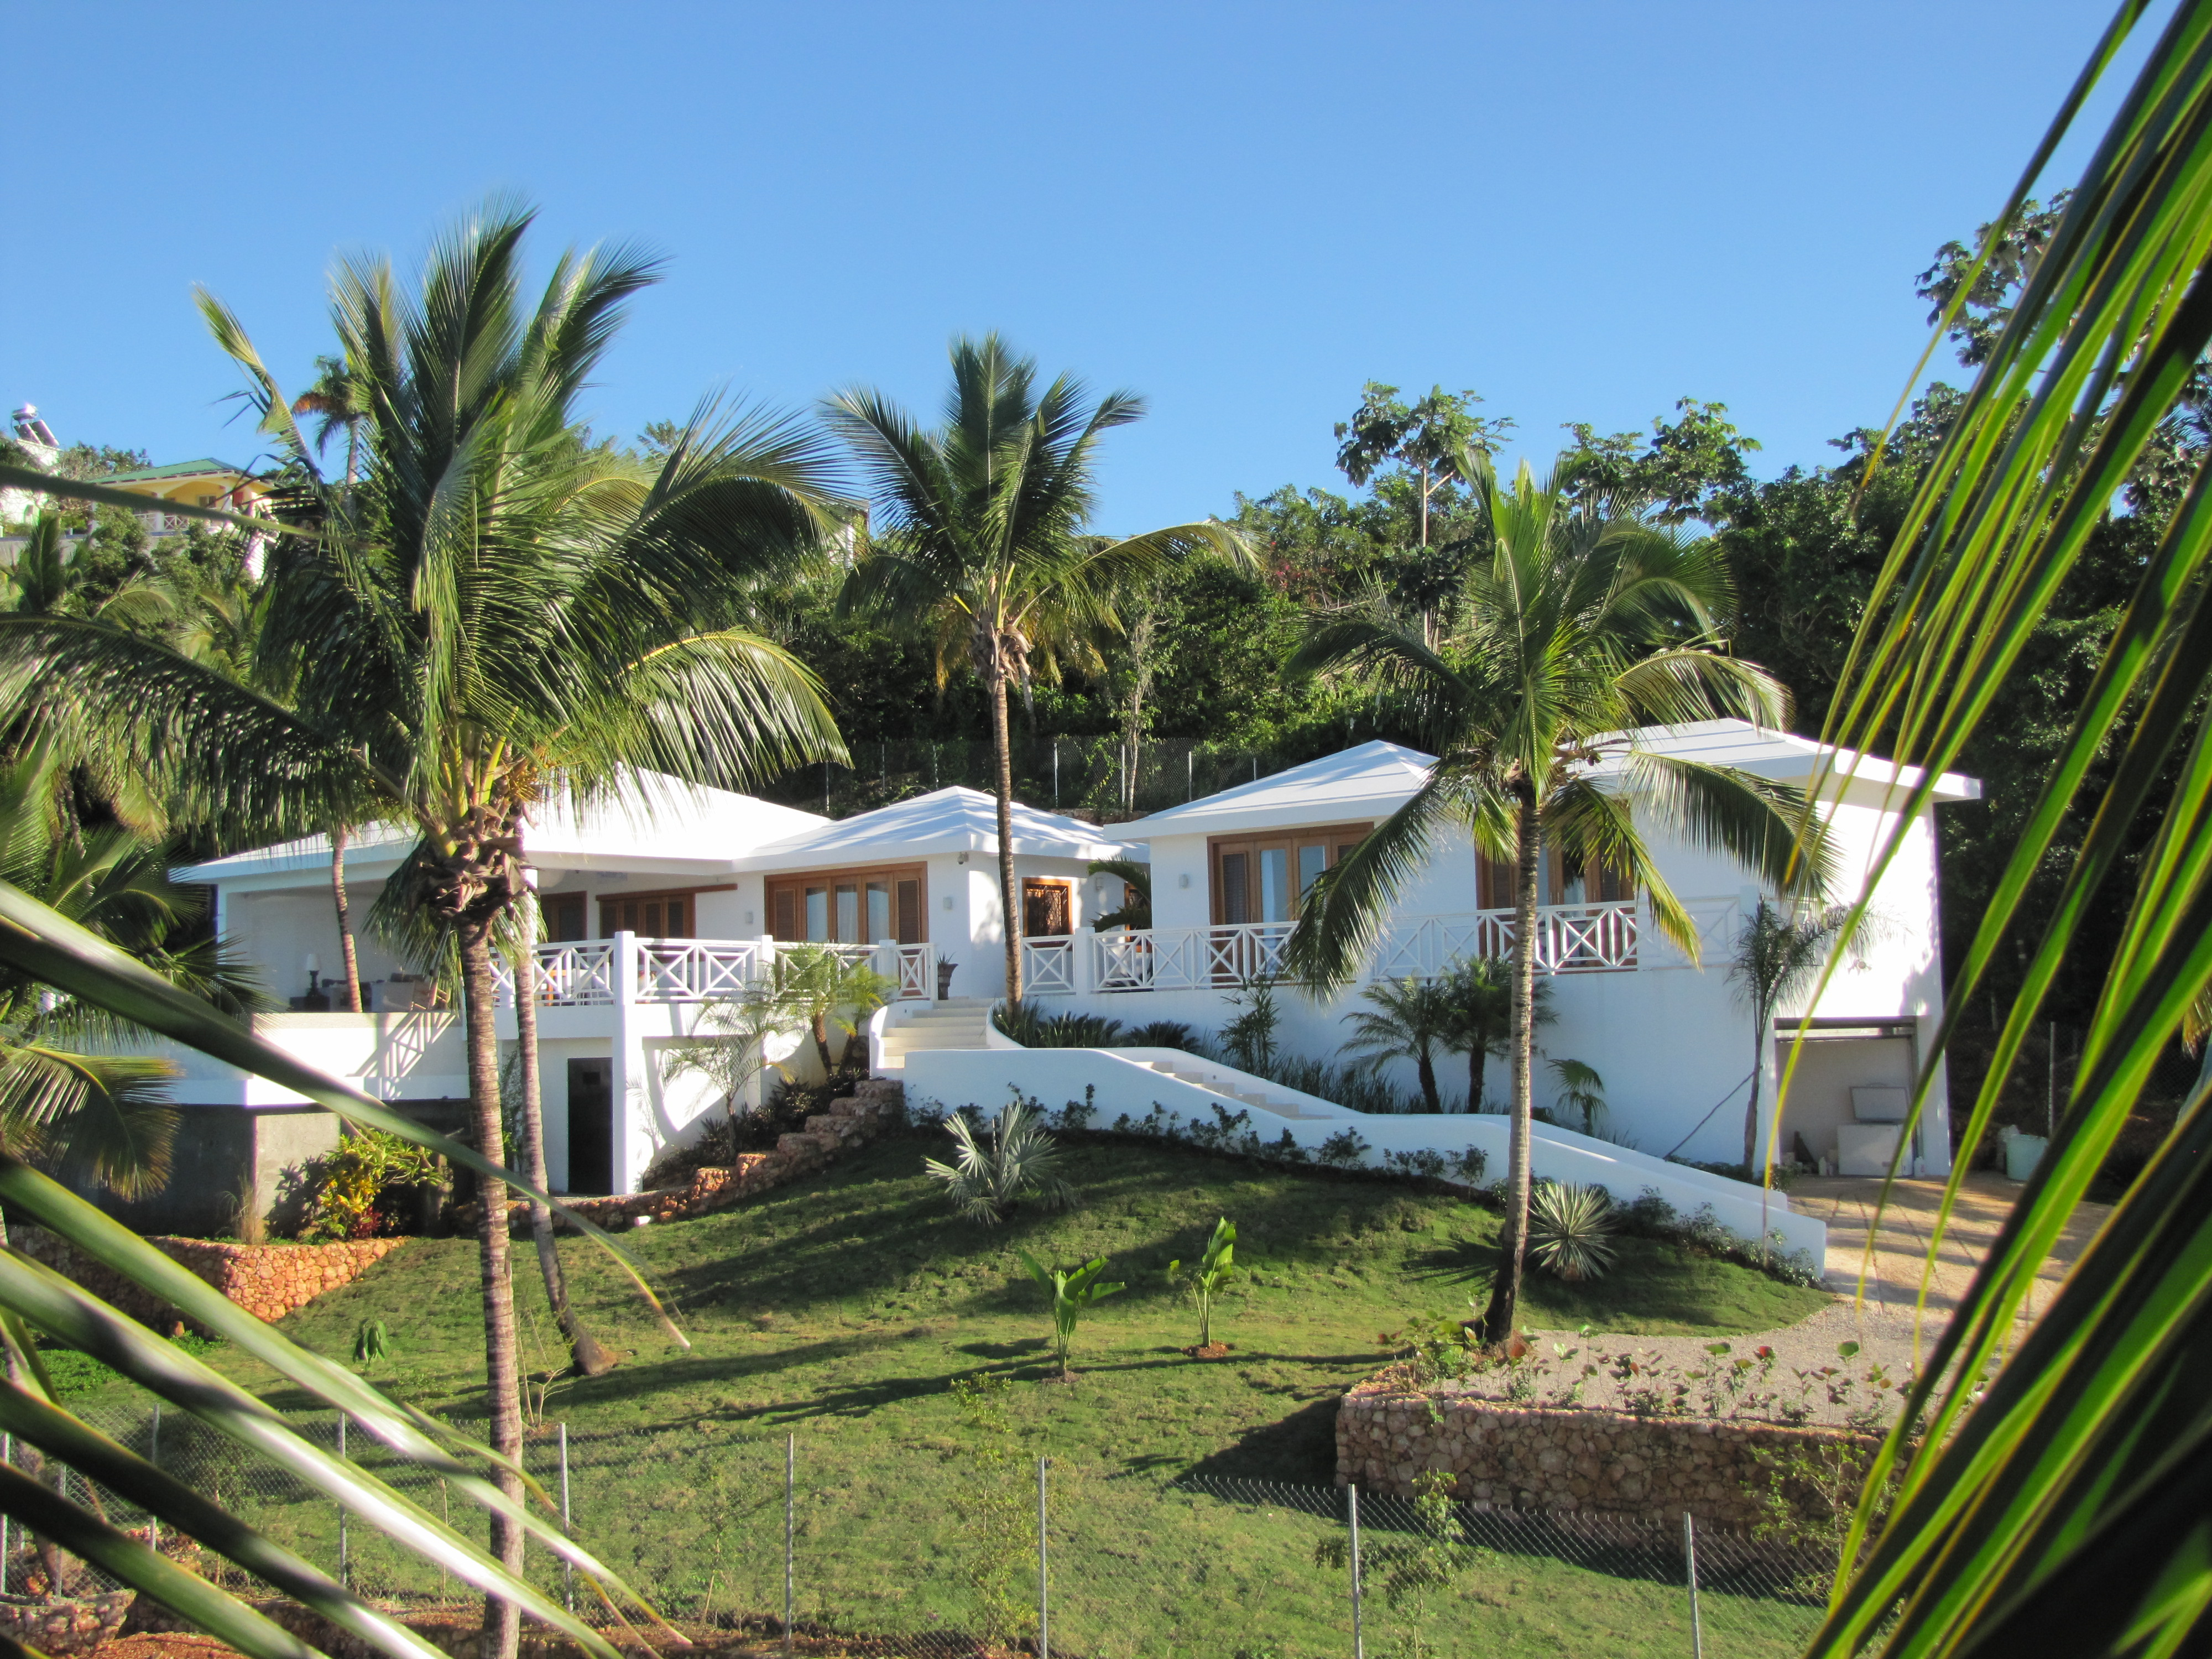 LUXURY 4 BED TRANQUIL & PRIVATE OCEAN VIEW VILLA  - $790,000 USD - C573LT